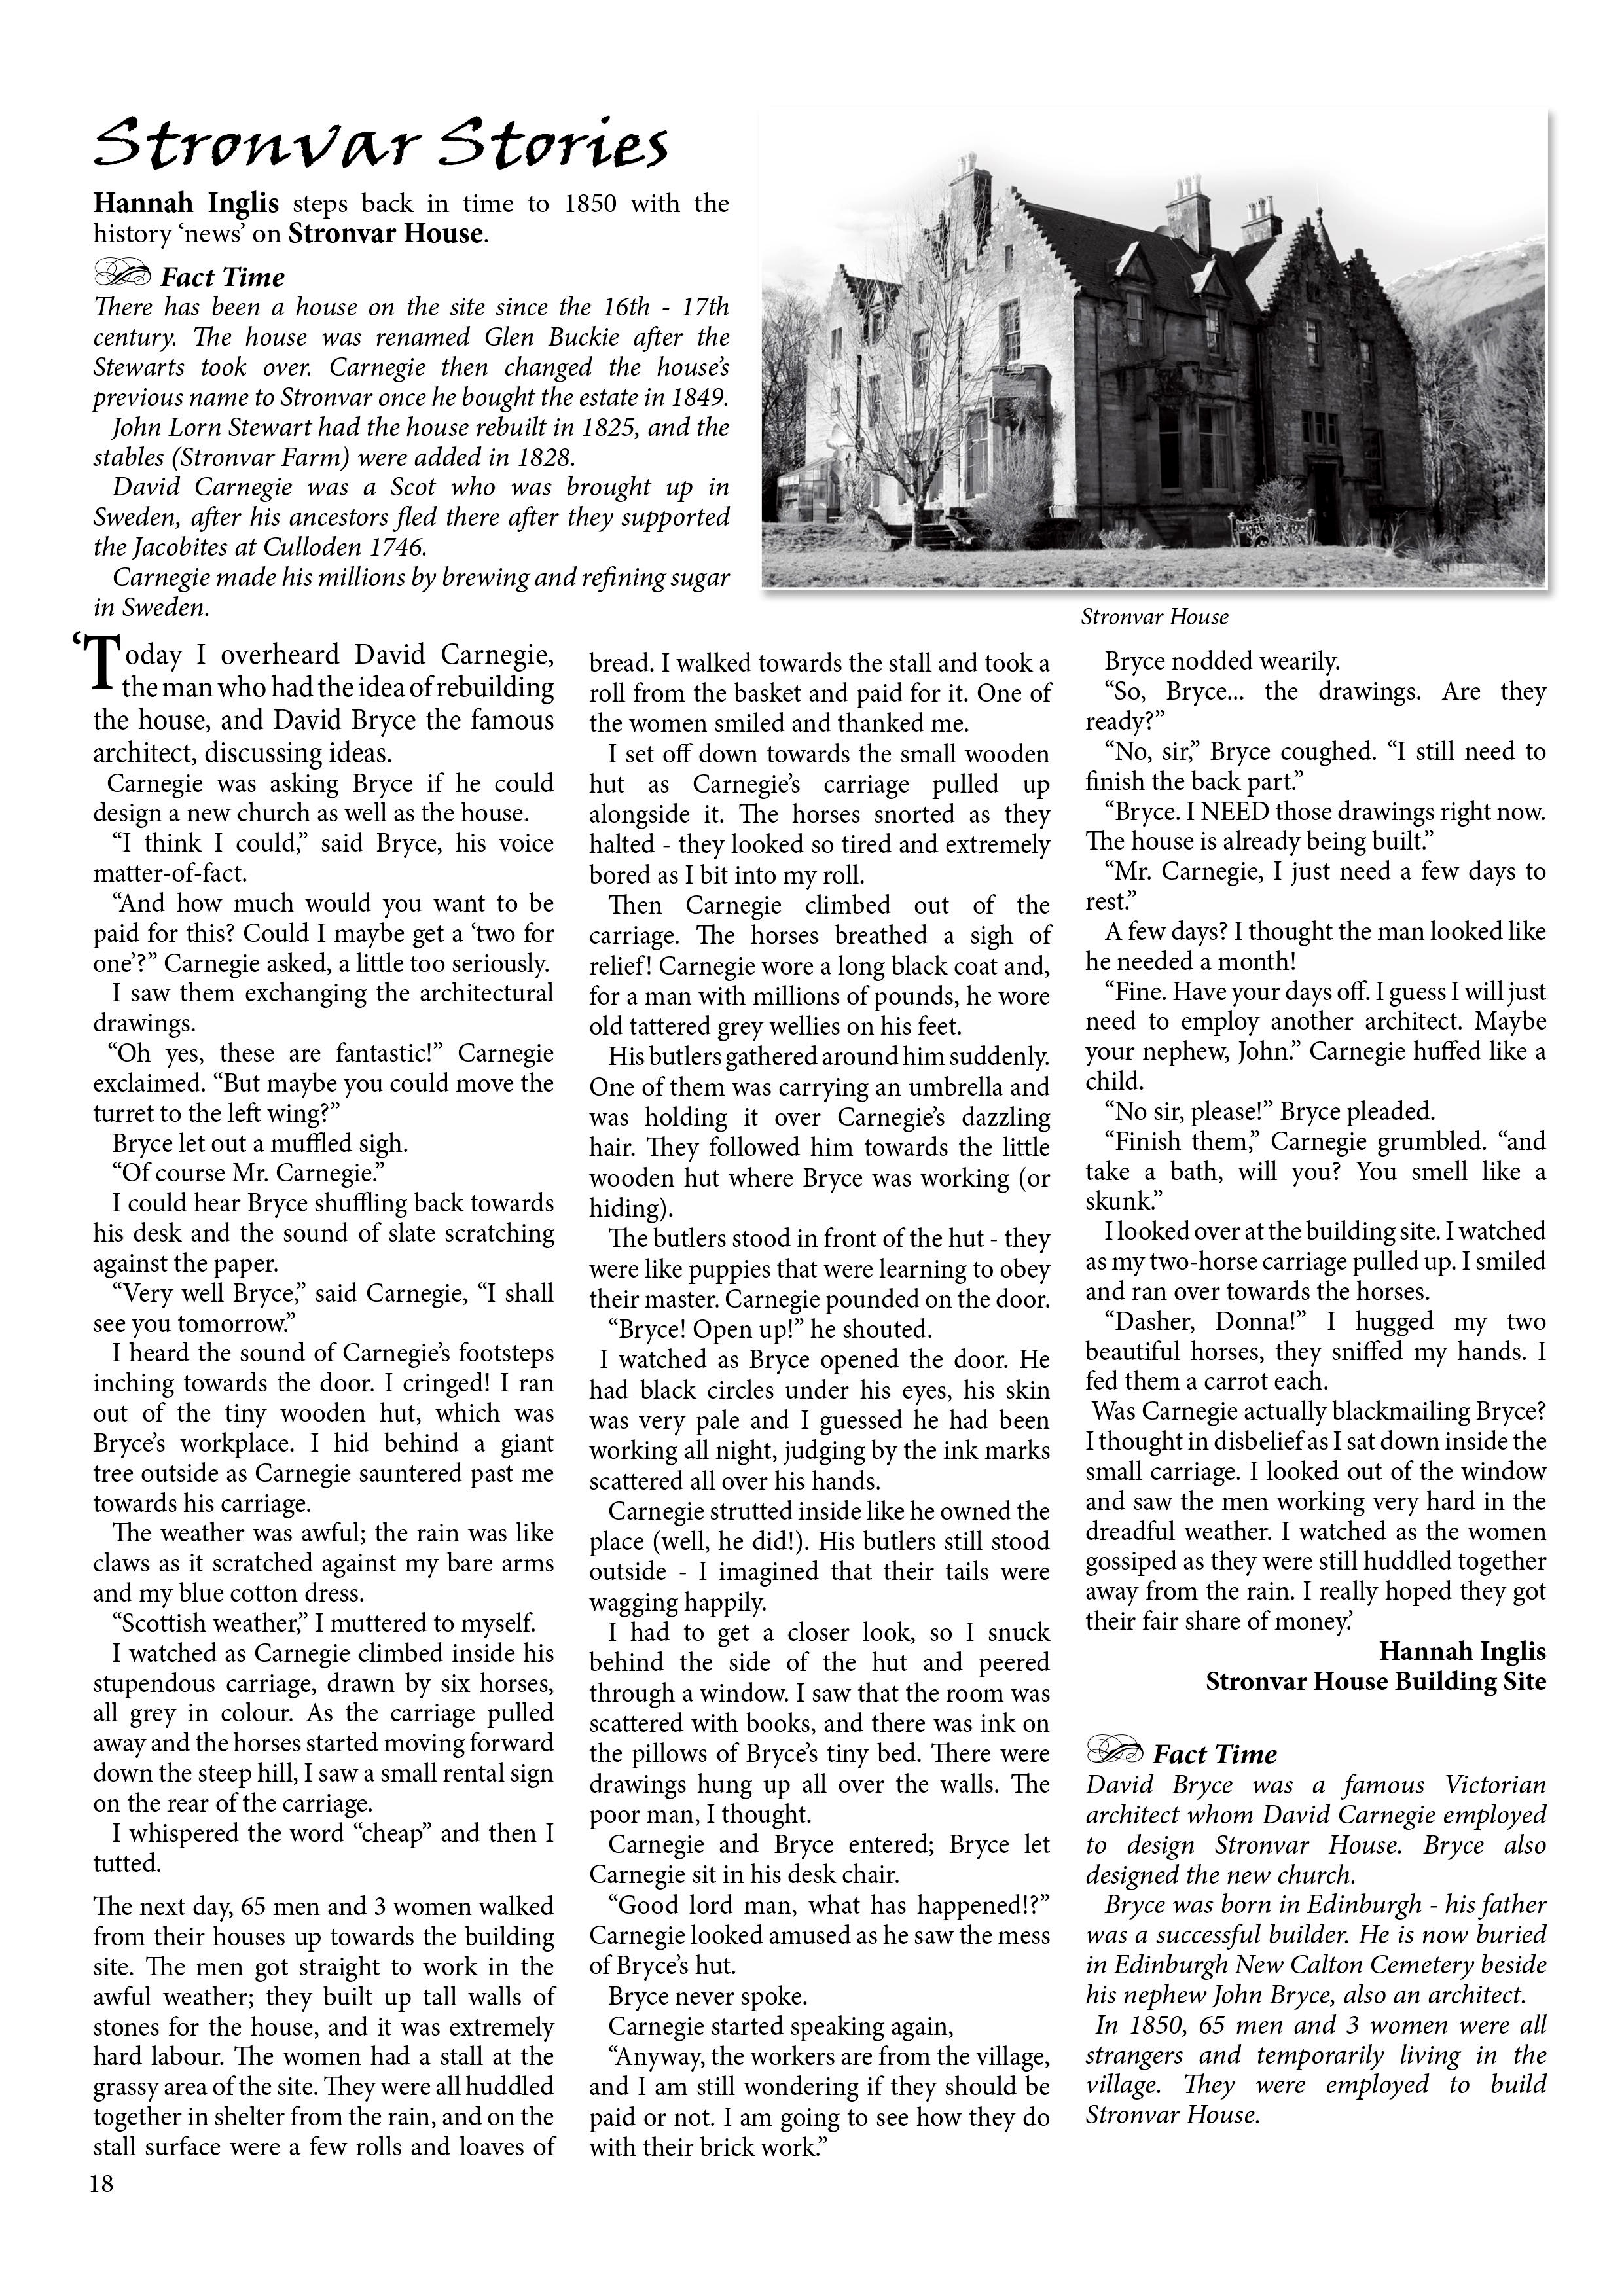 Stronvar House Stories 2 The Villagers Newspaper